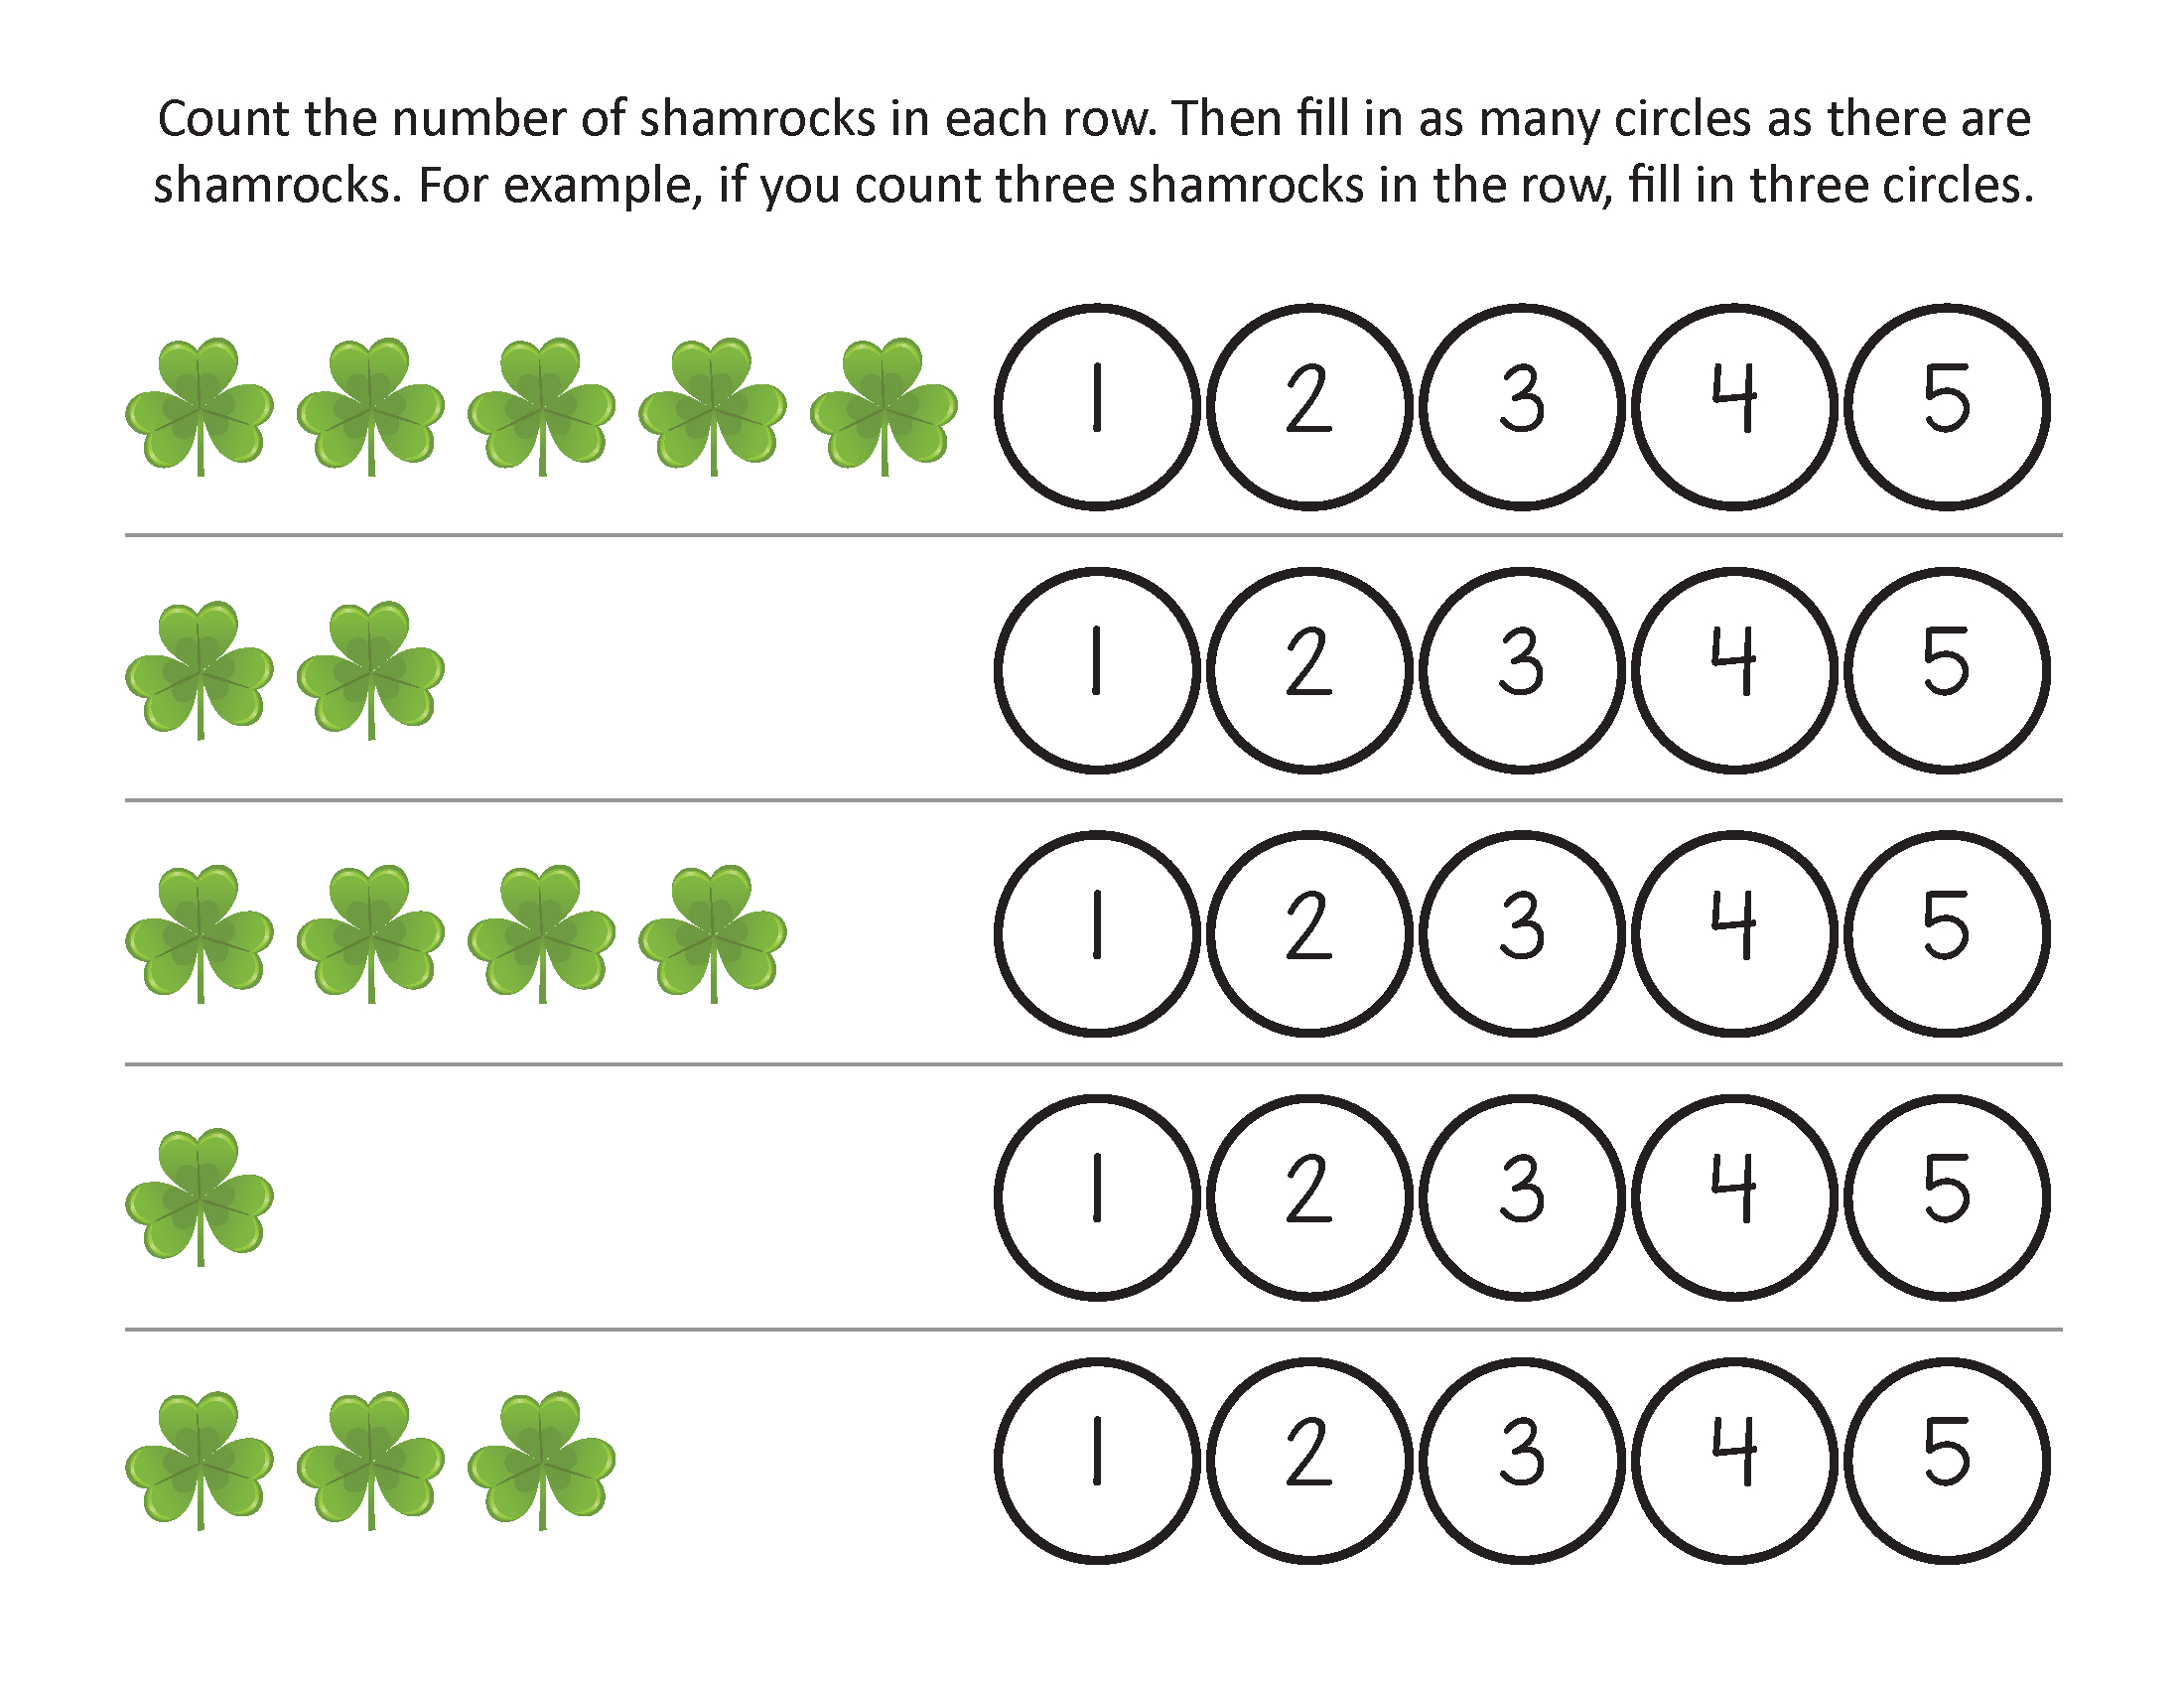 St Patricks Day Worksheets - Best Coloring Pages For Kids | Free Printable St Patrick Day Worksheets